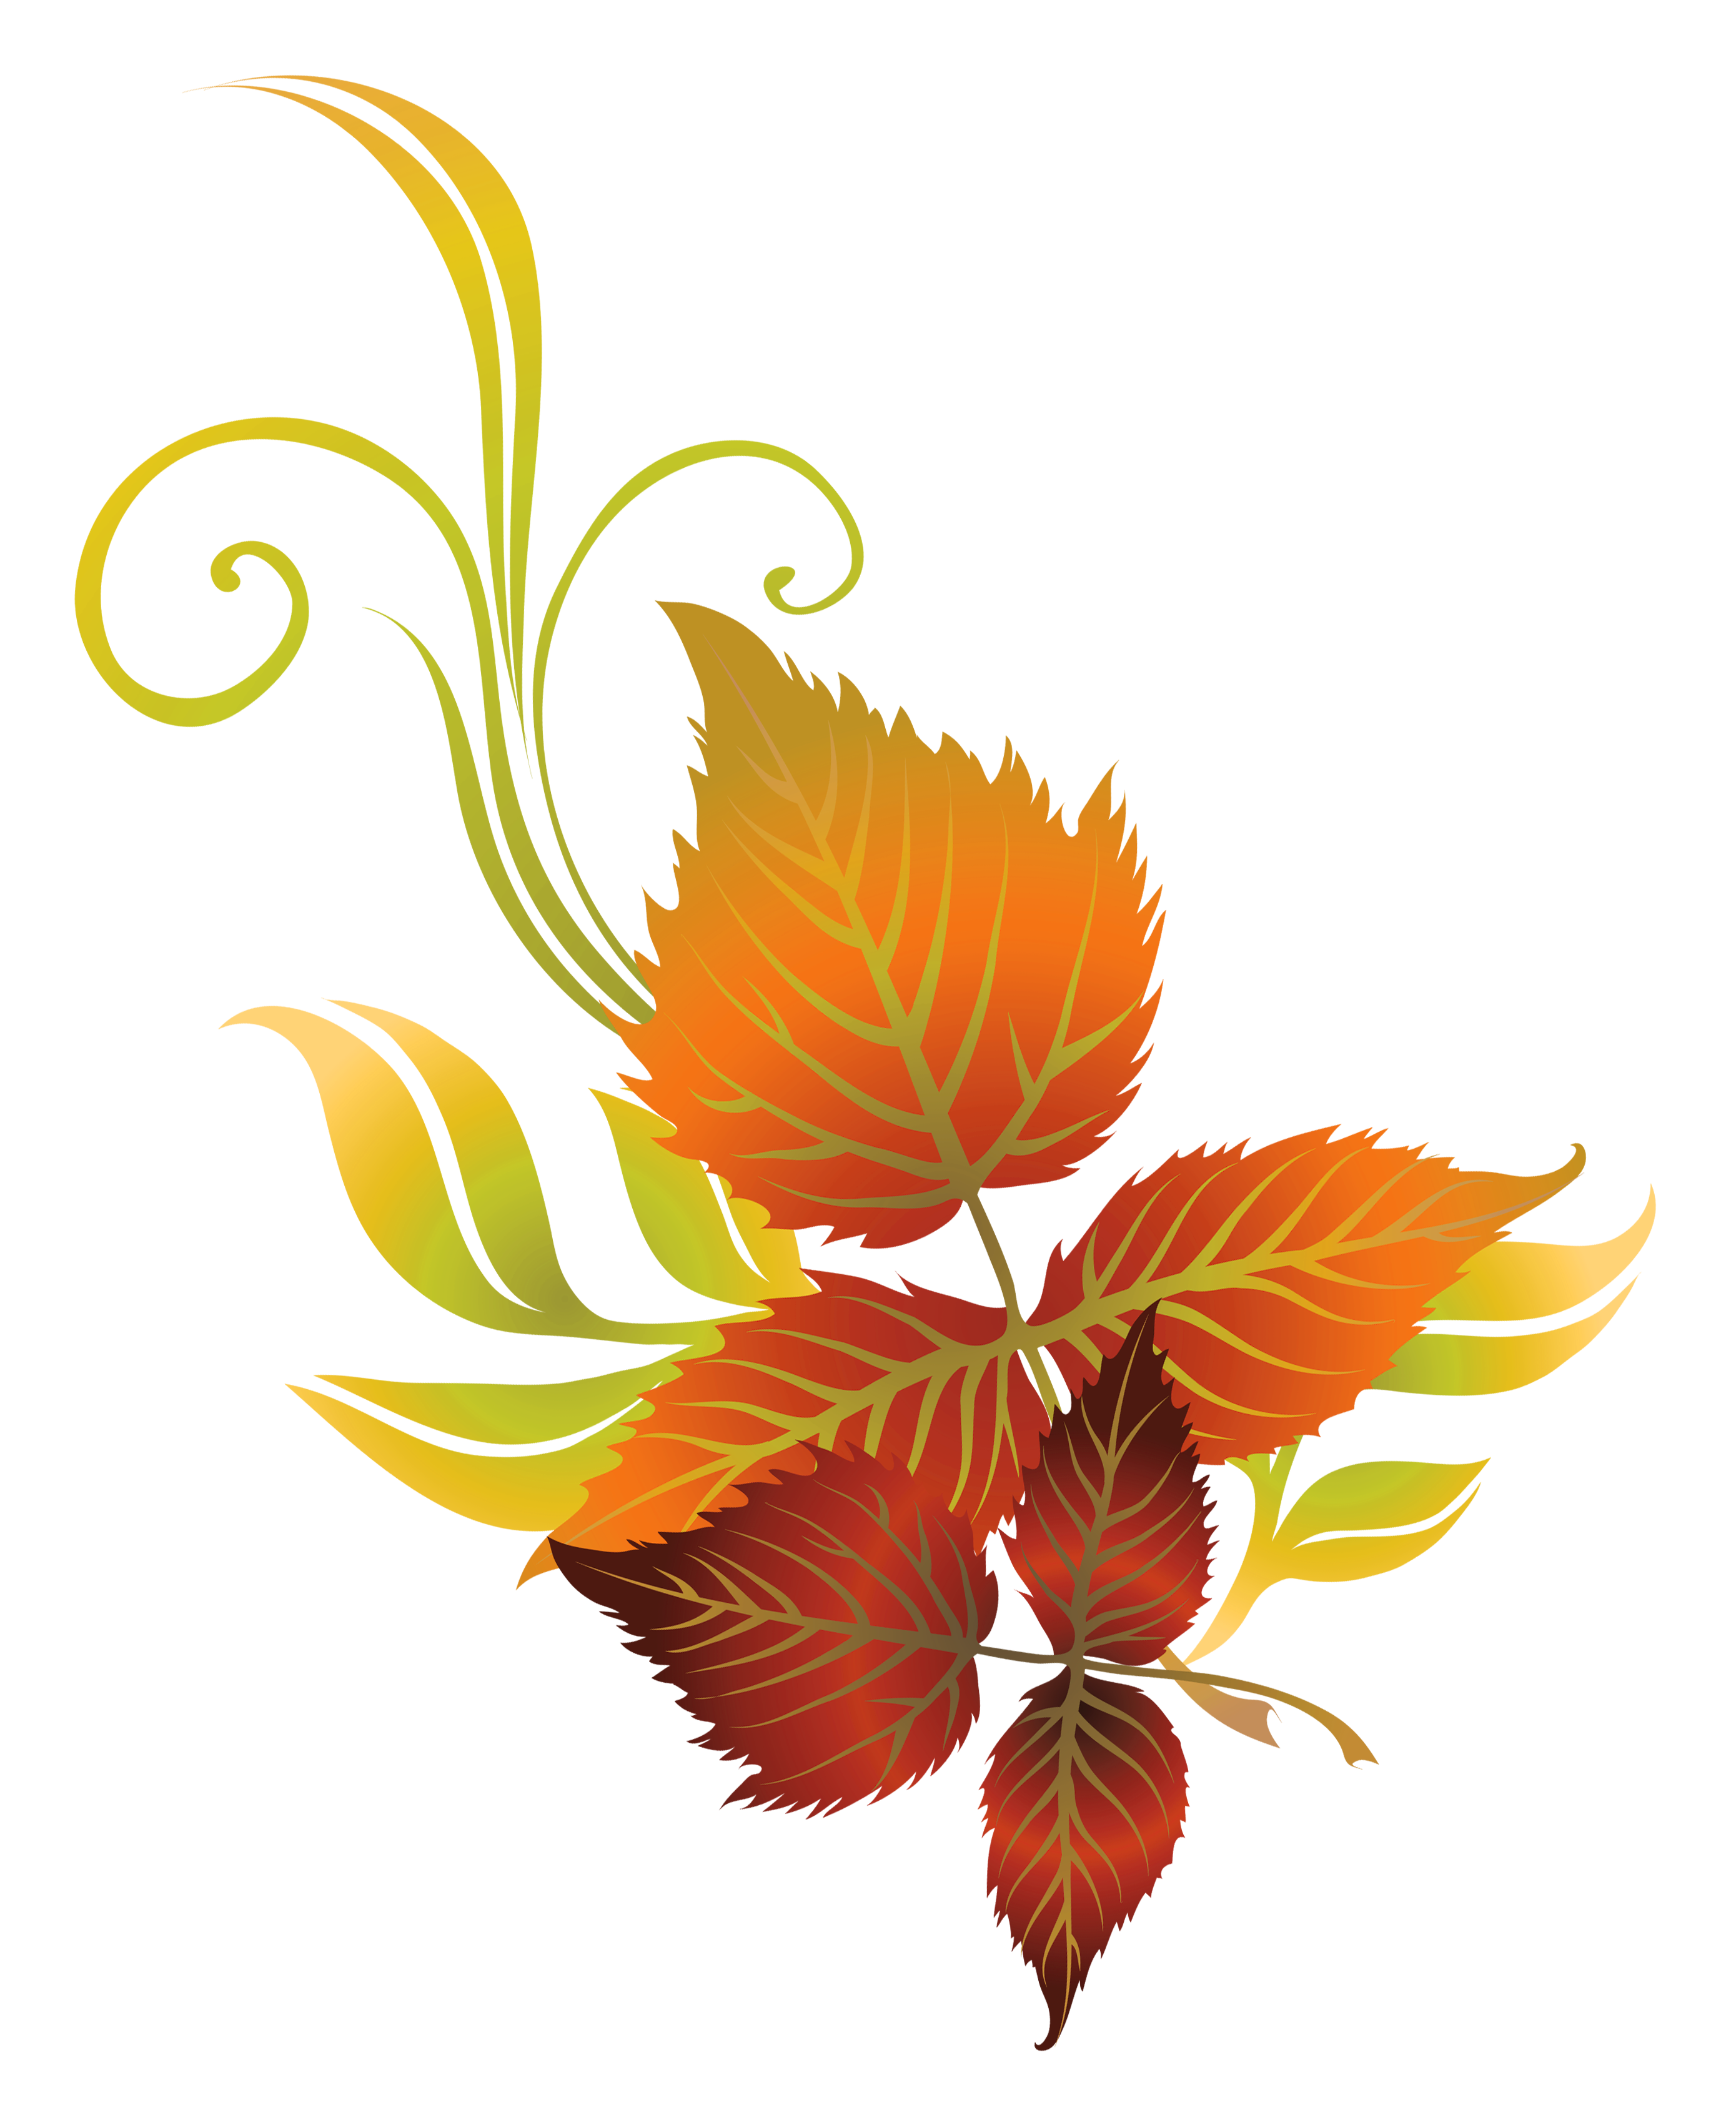 Fall leaves deco png. Leaf clipart clear background